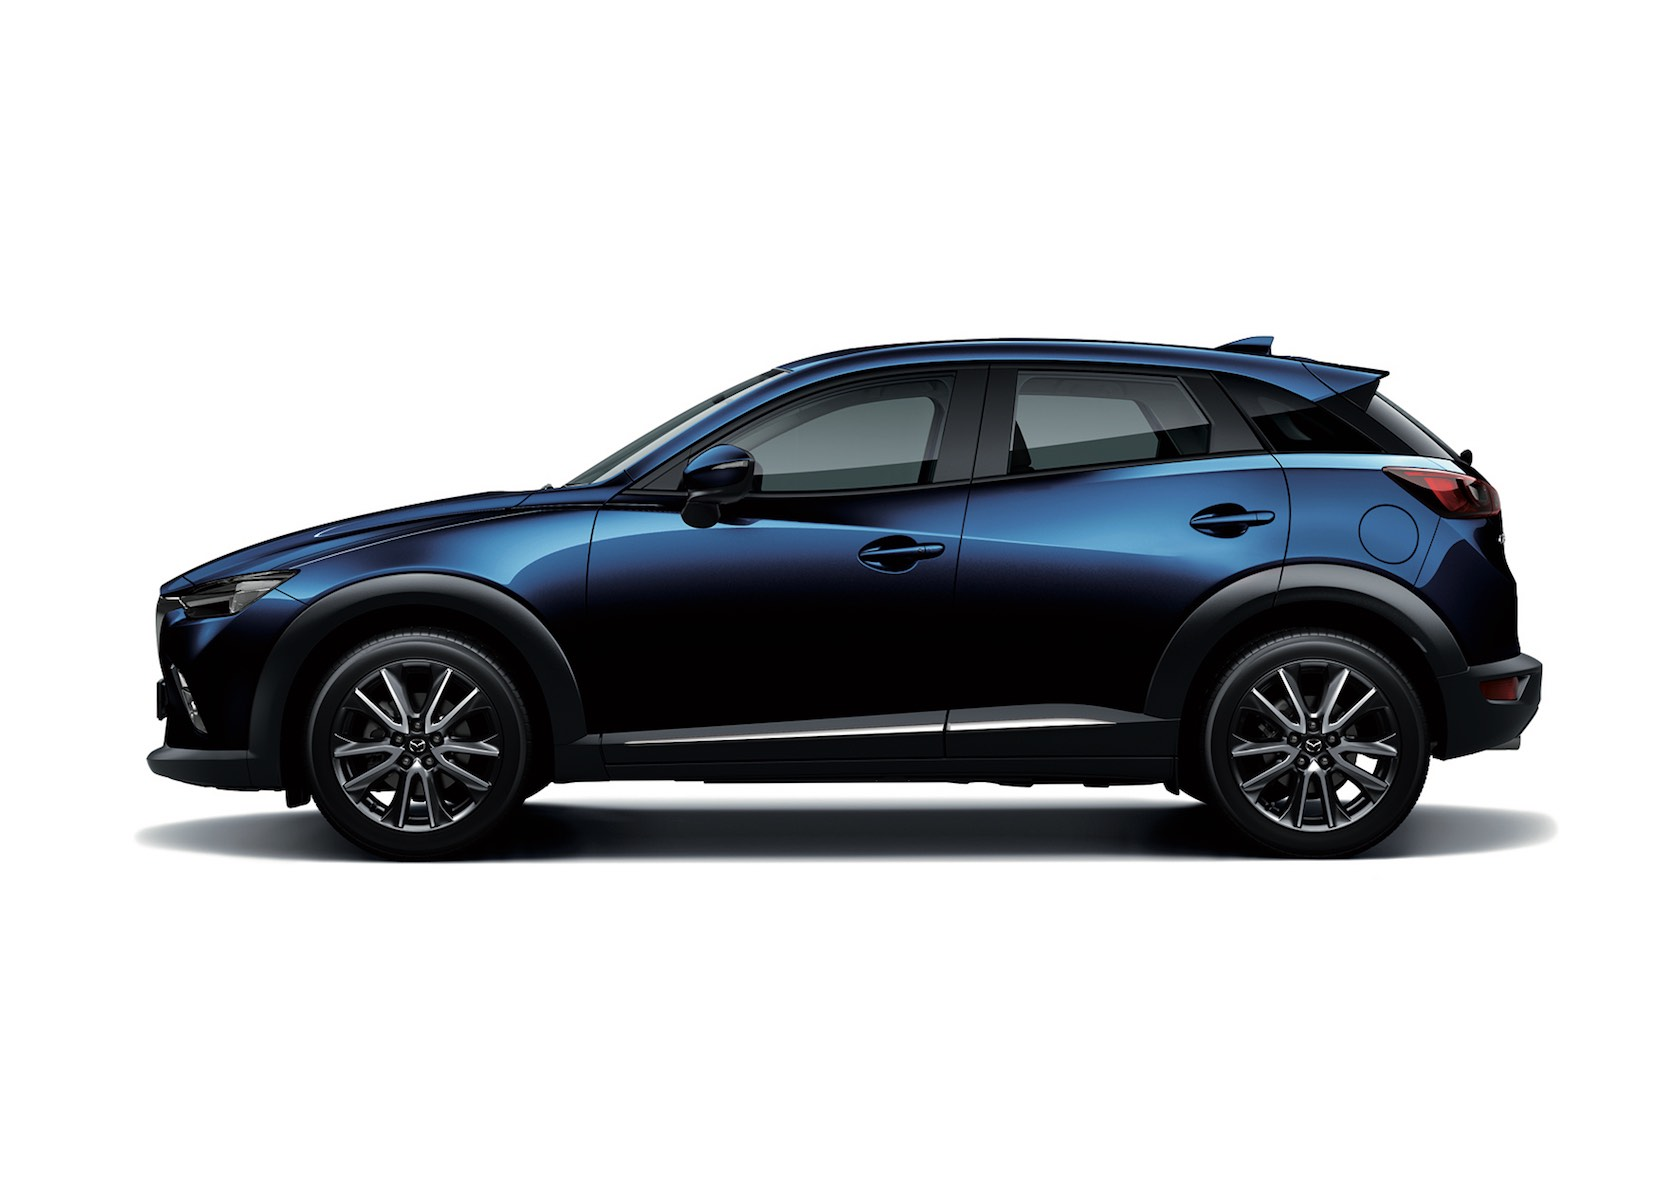 prix mazda cx 3 2 0 l skyactiv g core grade a partir de 91 600 dt. Black Bedroom Furniture Sets. Home Design Ideas